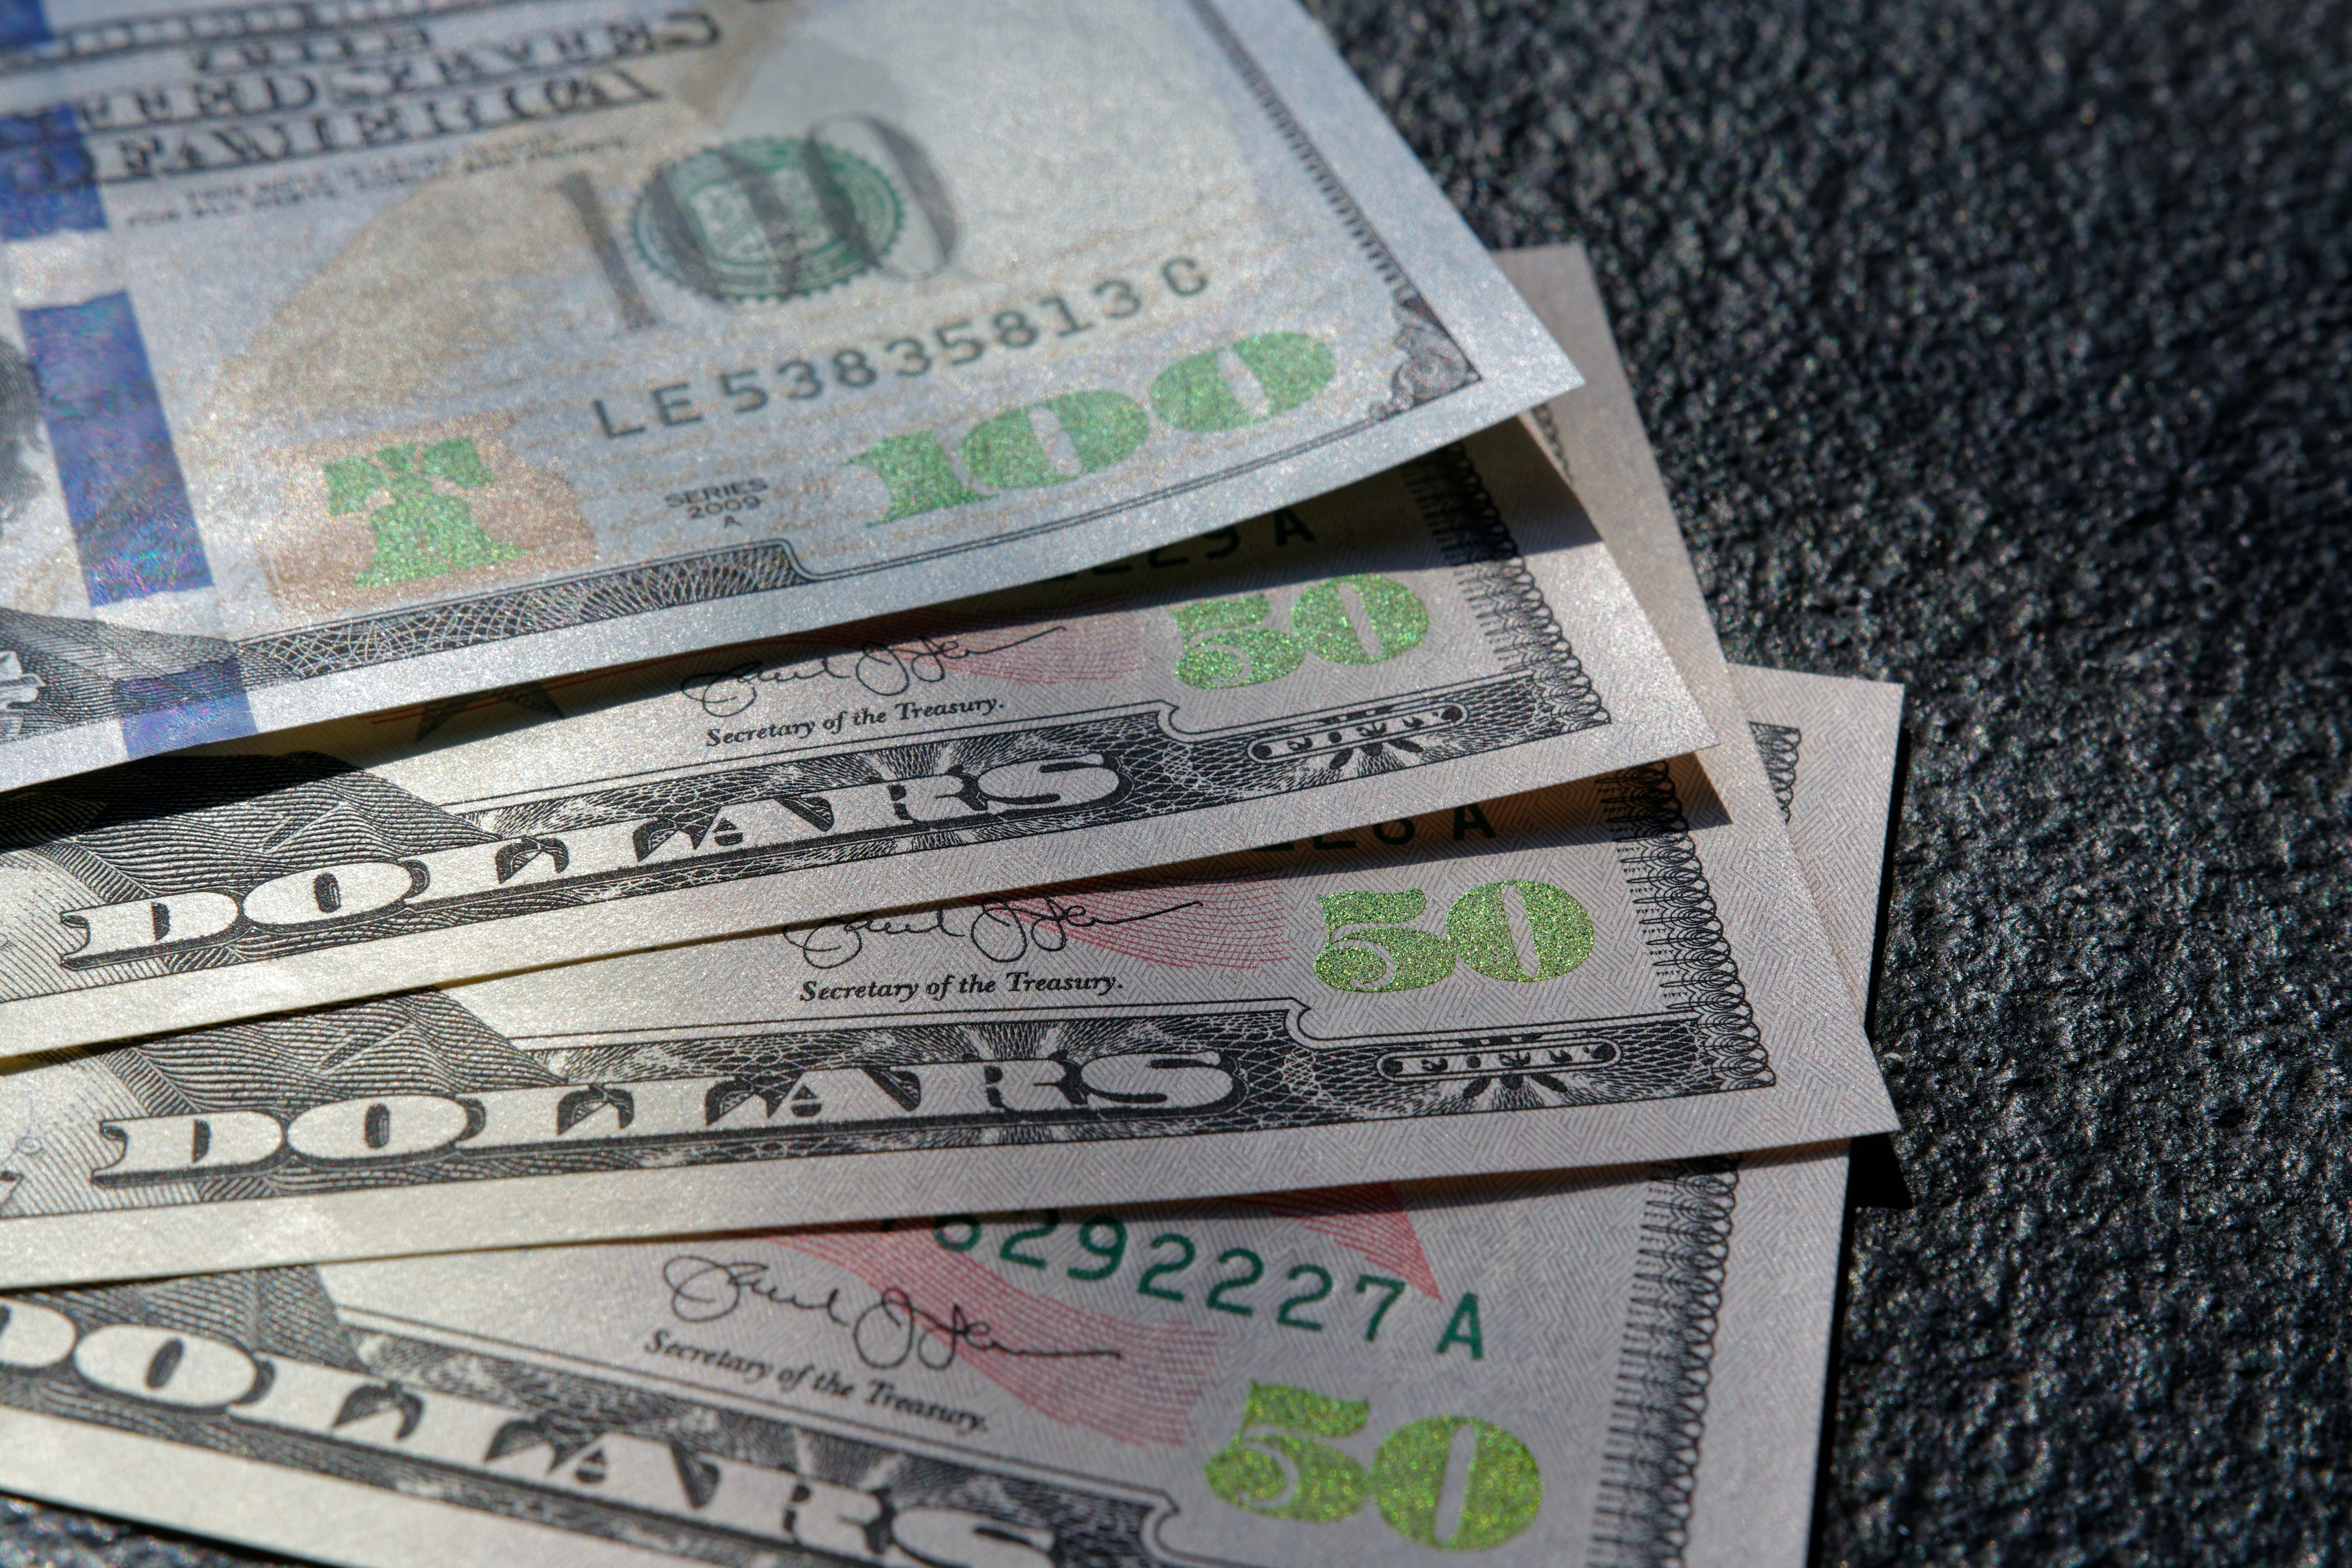 School Treasurers Face Embezzlement Charges